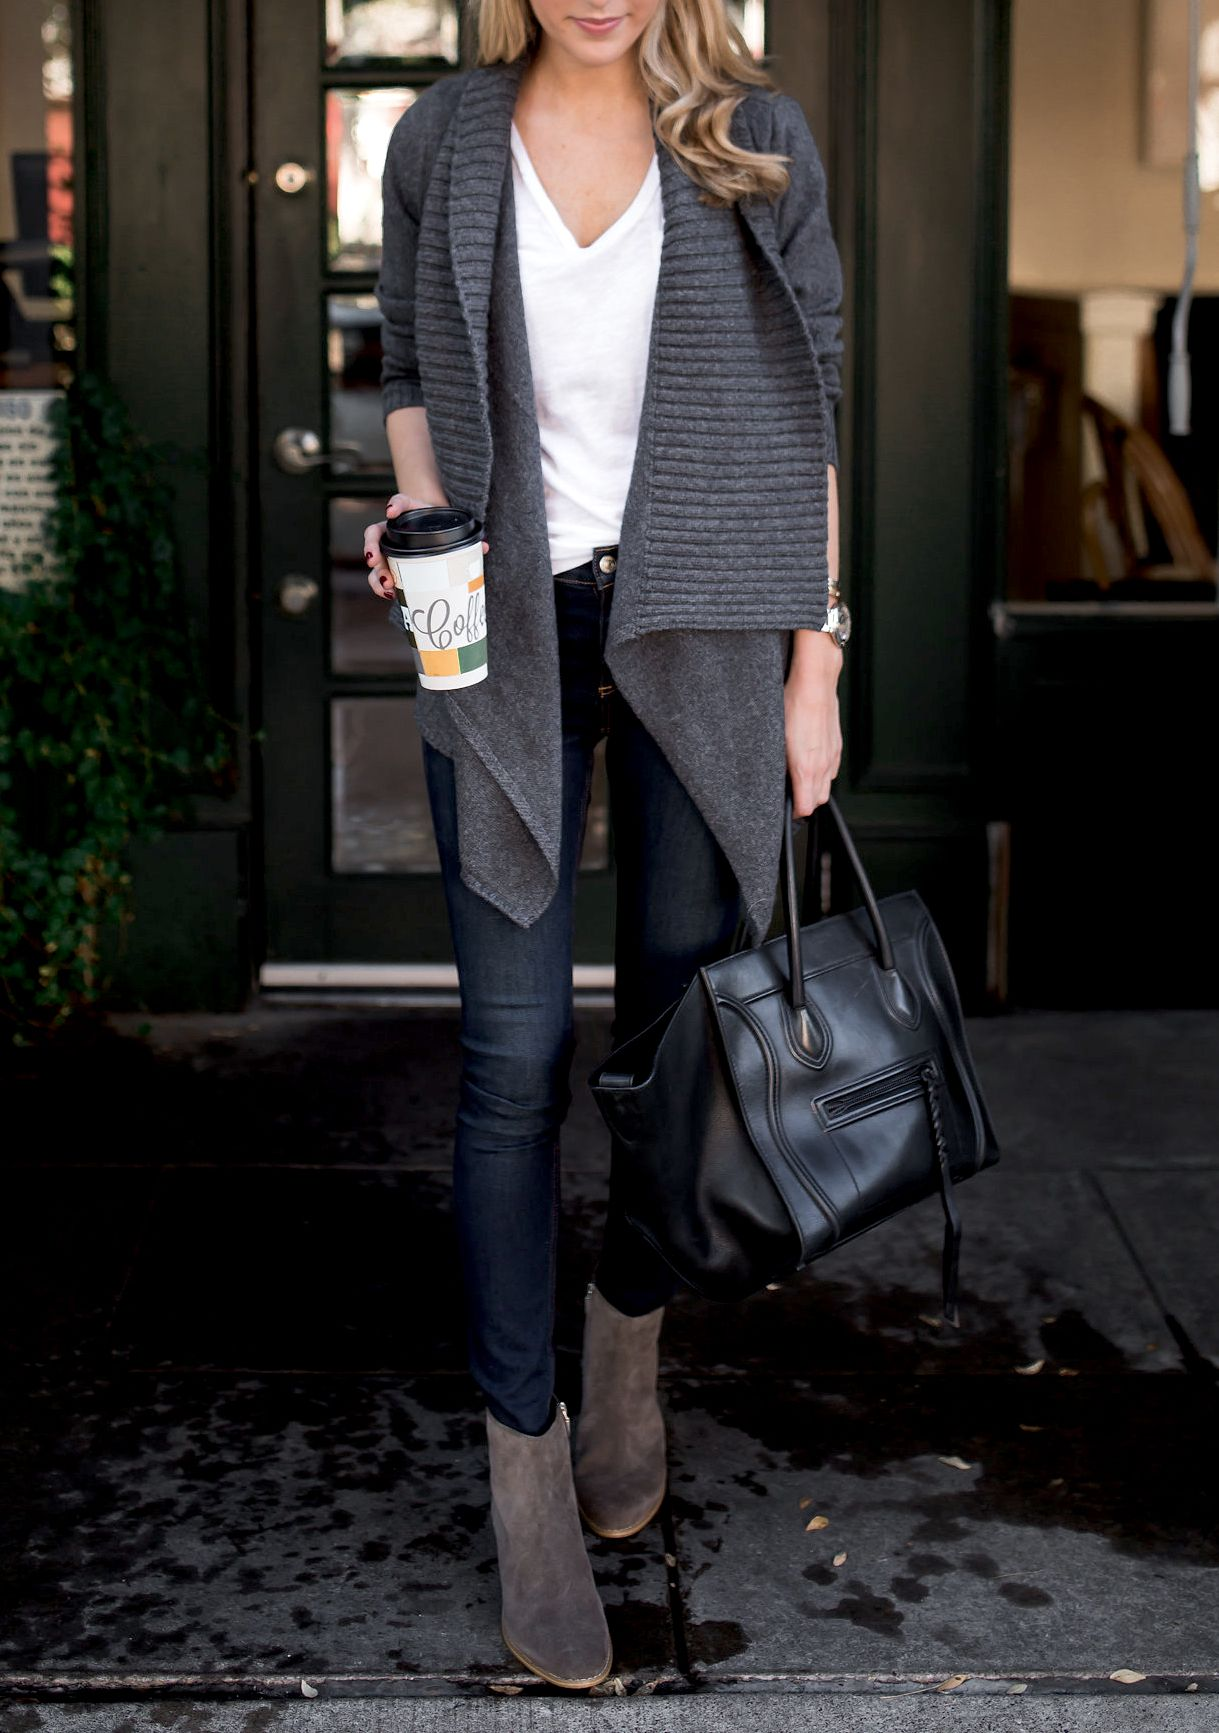 83a60233d9 Cozy Fall outfit idea from Zappos with Clarks comfortable booties ...